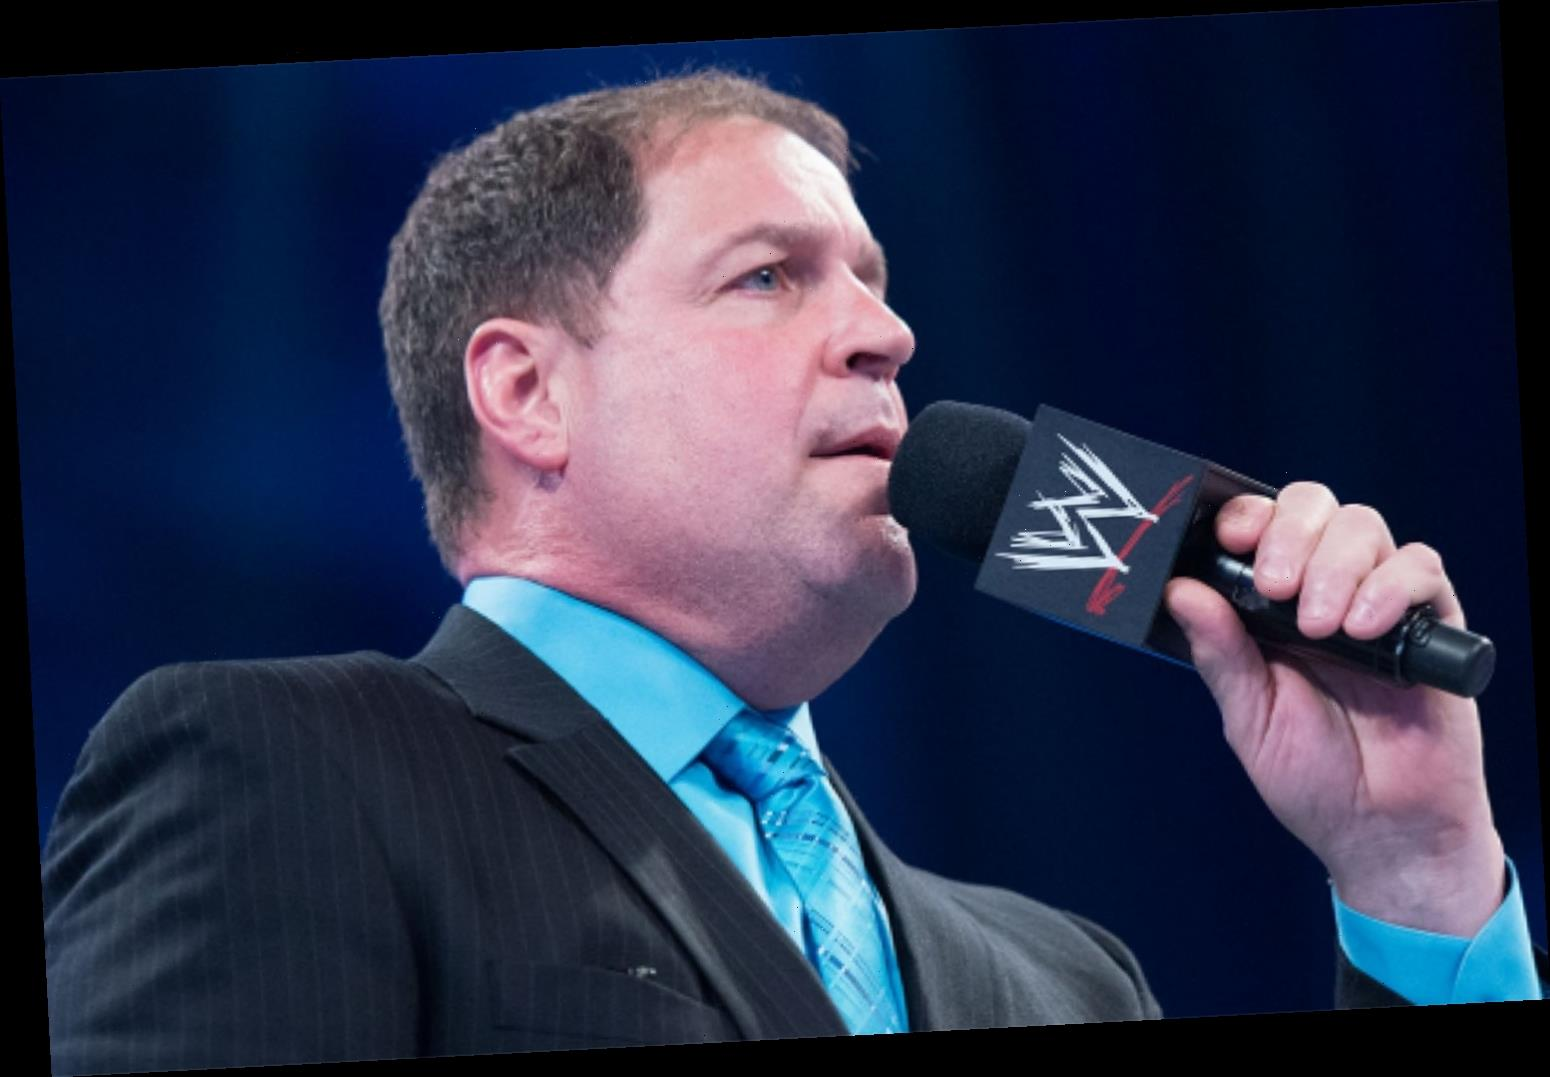 WWE axe 'up to 15 MORE' staff due to coronavirus pandemic including 30-year ring announce veteran Tony Chimel